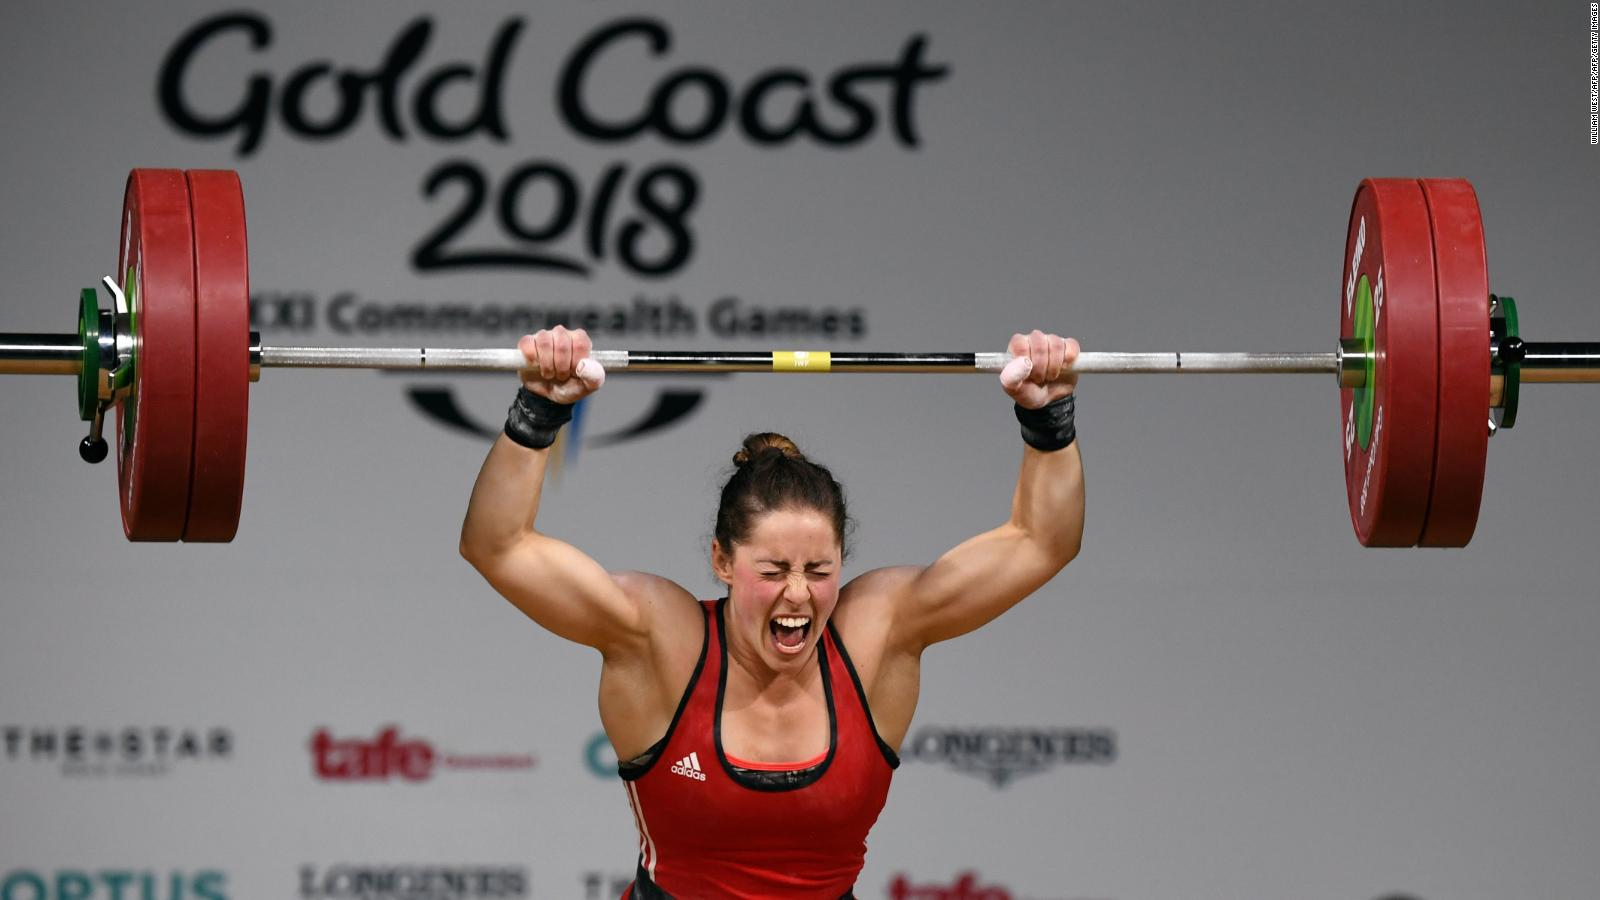 Laurel Hubbard New Zealand S Transgender Weightlifter Likely To Retire After Injury Cnn